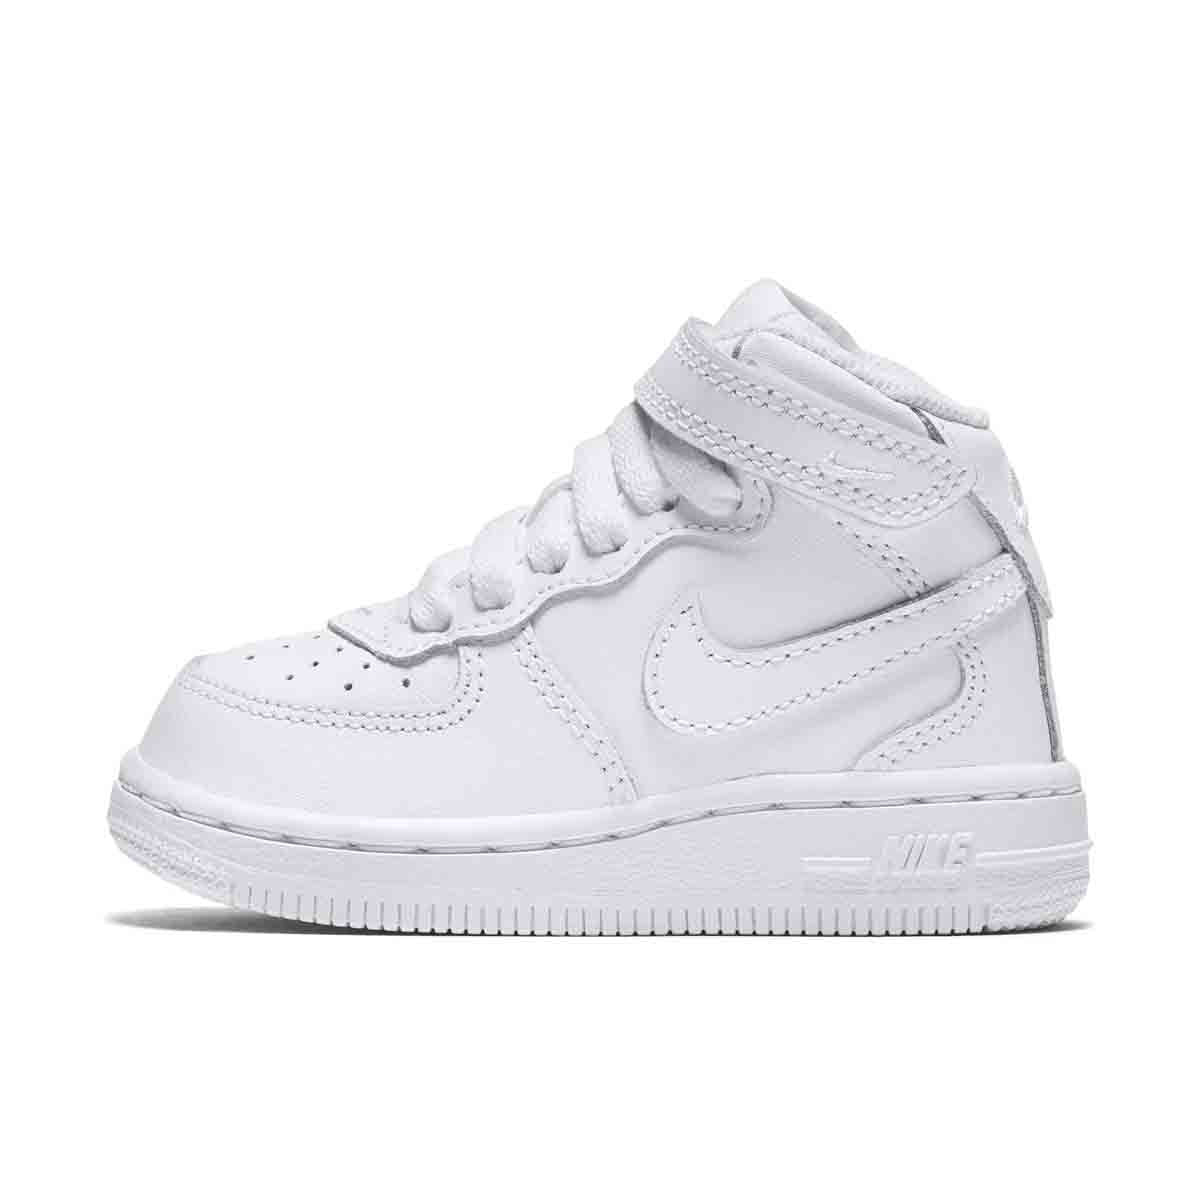 Toddler Nike Force 1 Mid